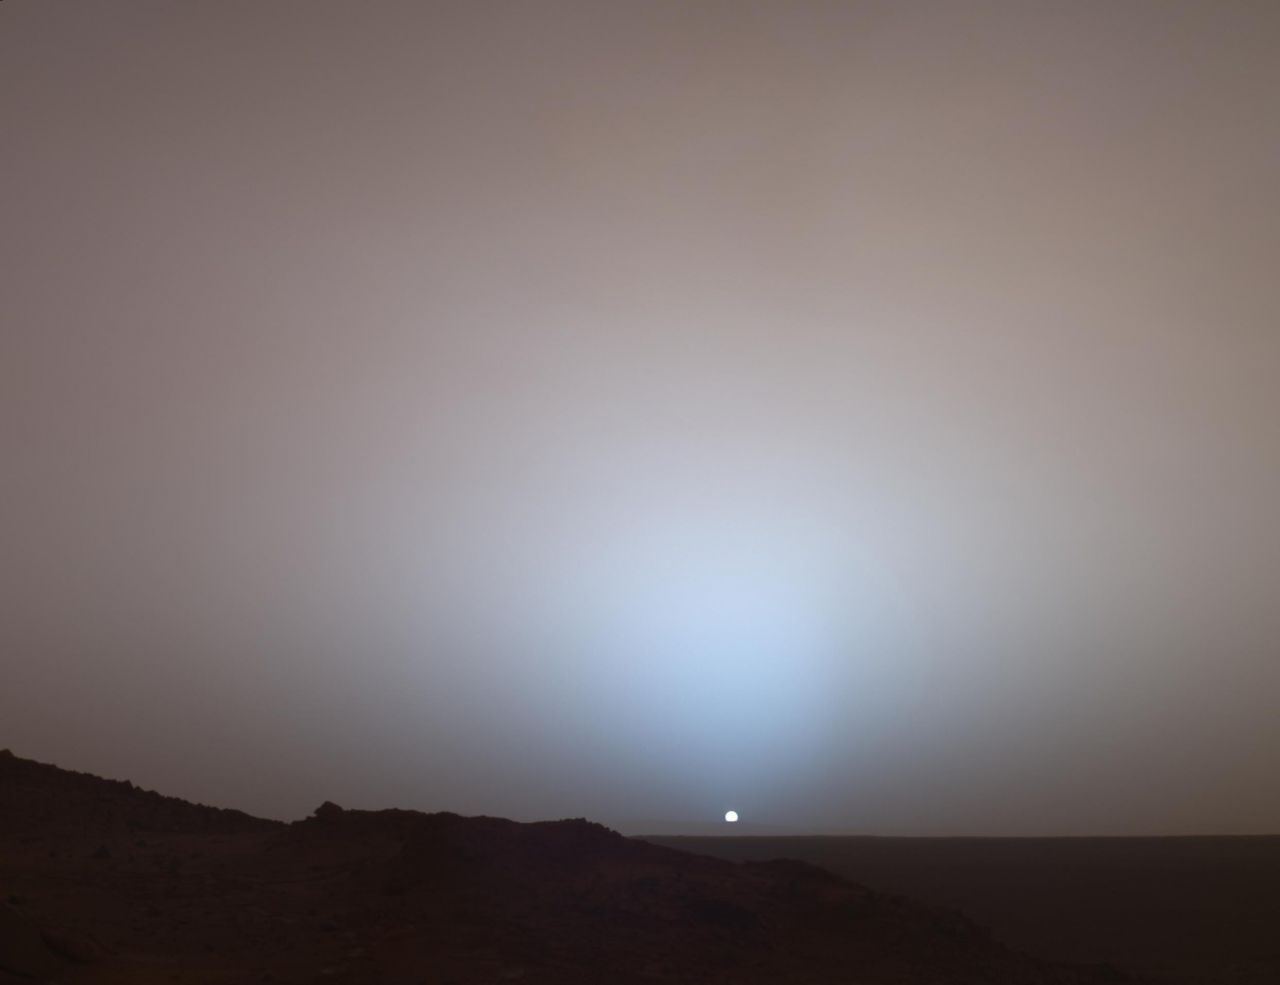 Mars Exploration Rover Spirit captures a stunning view as the sun sank below the rim of the Gusev crater on Mars on May 19, 2005.